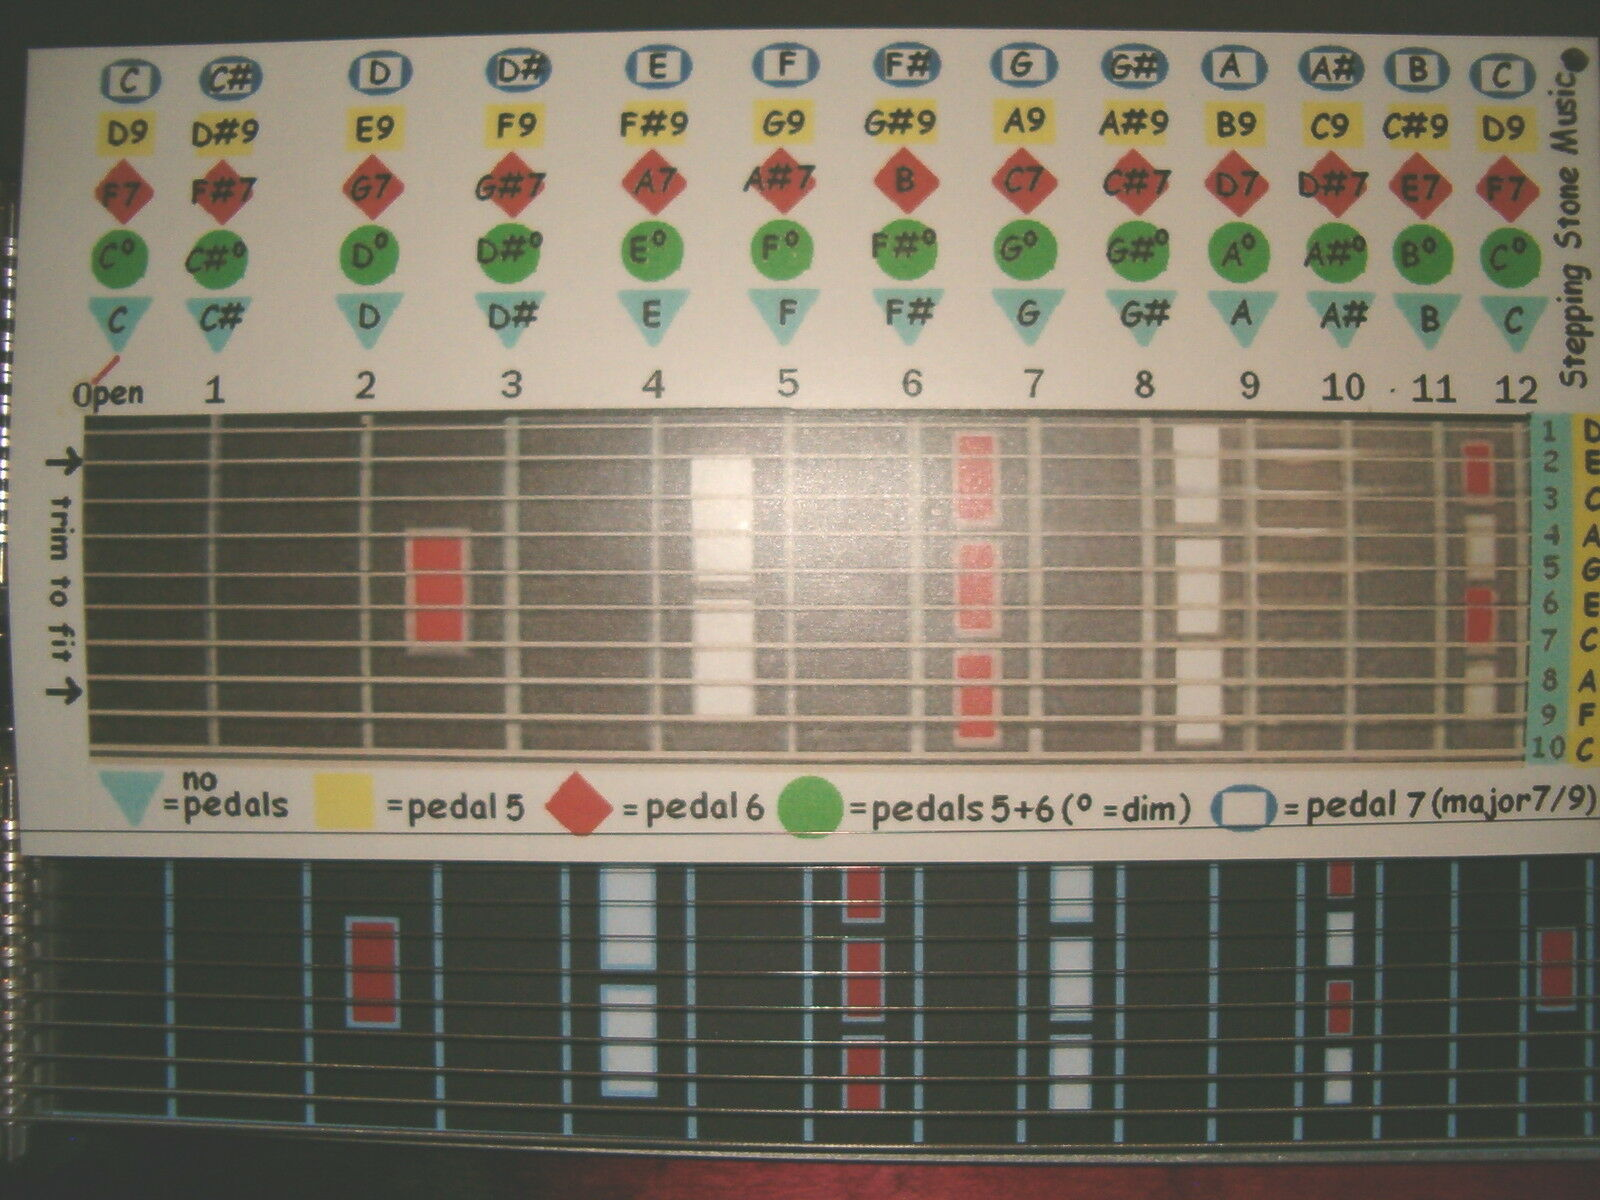 C6 Chordboard For The Pedal Steel Guitar 1200 Picclick